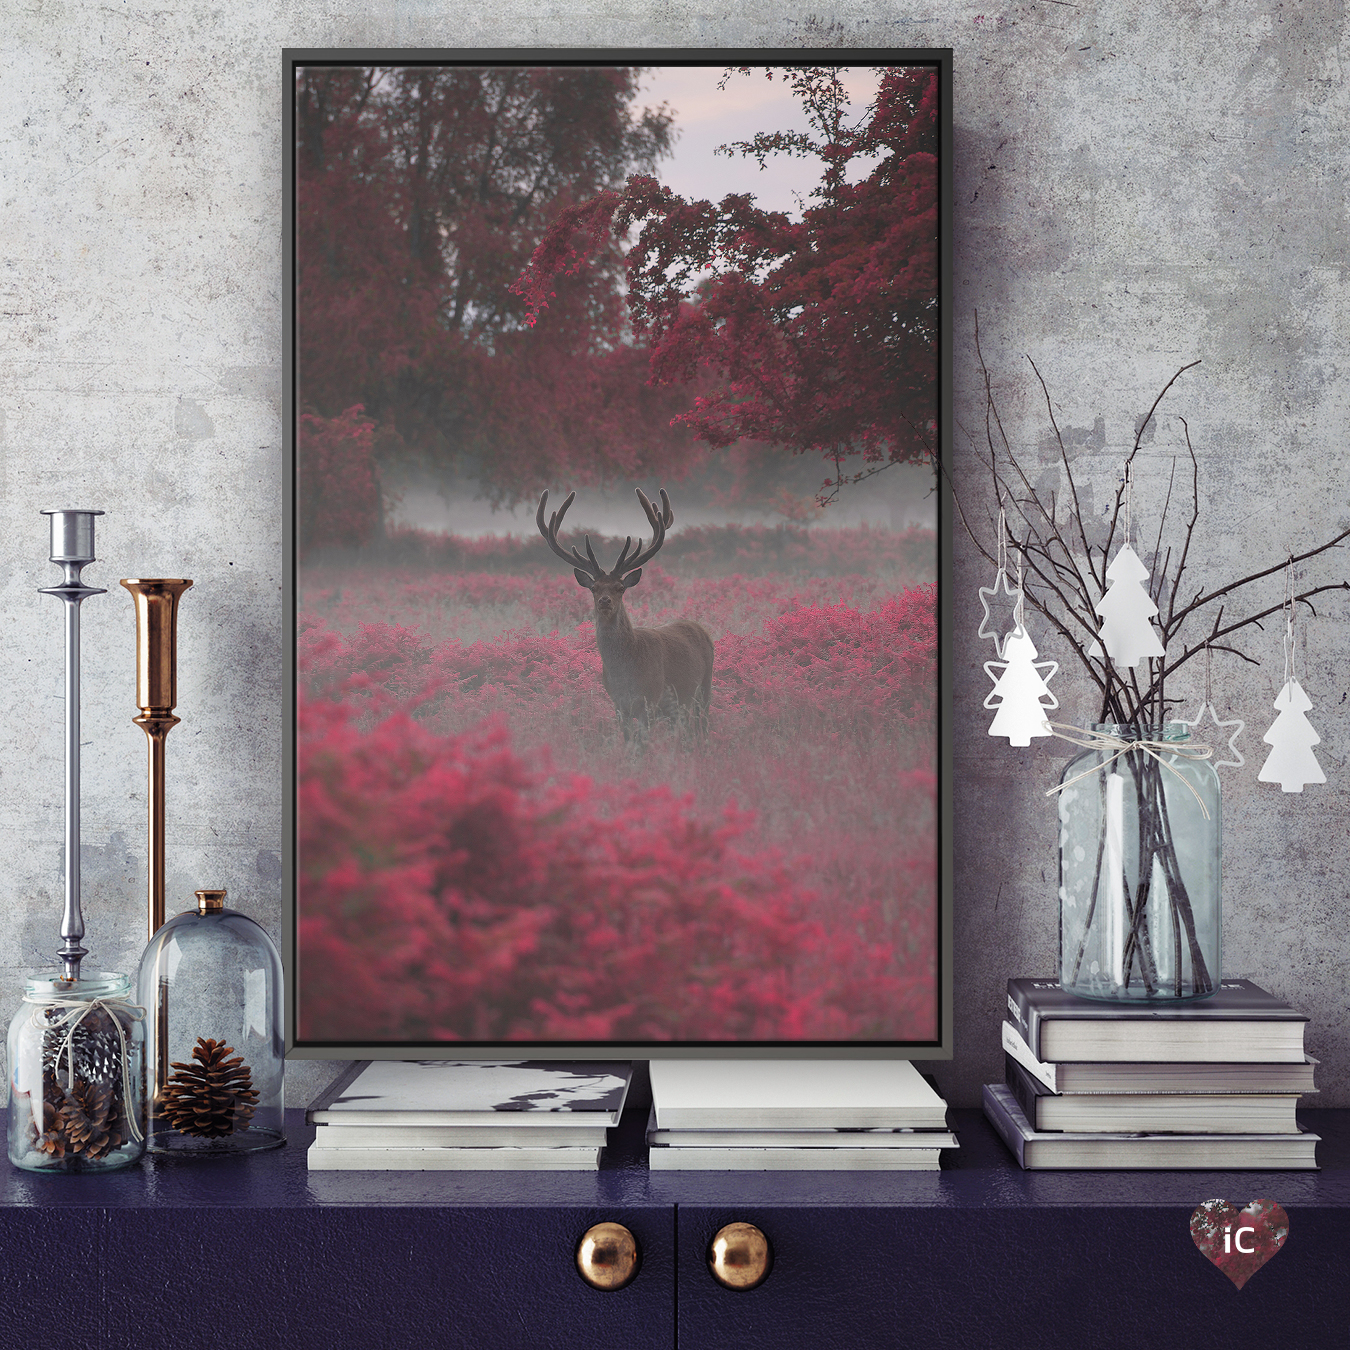 """""""Strawberry Stag I"""" by Max Ellis shows a stag standing in red fields under red trees."""